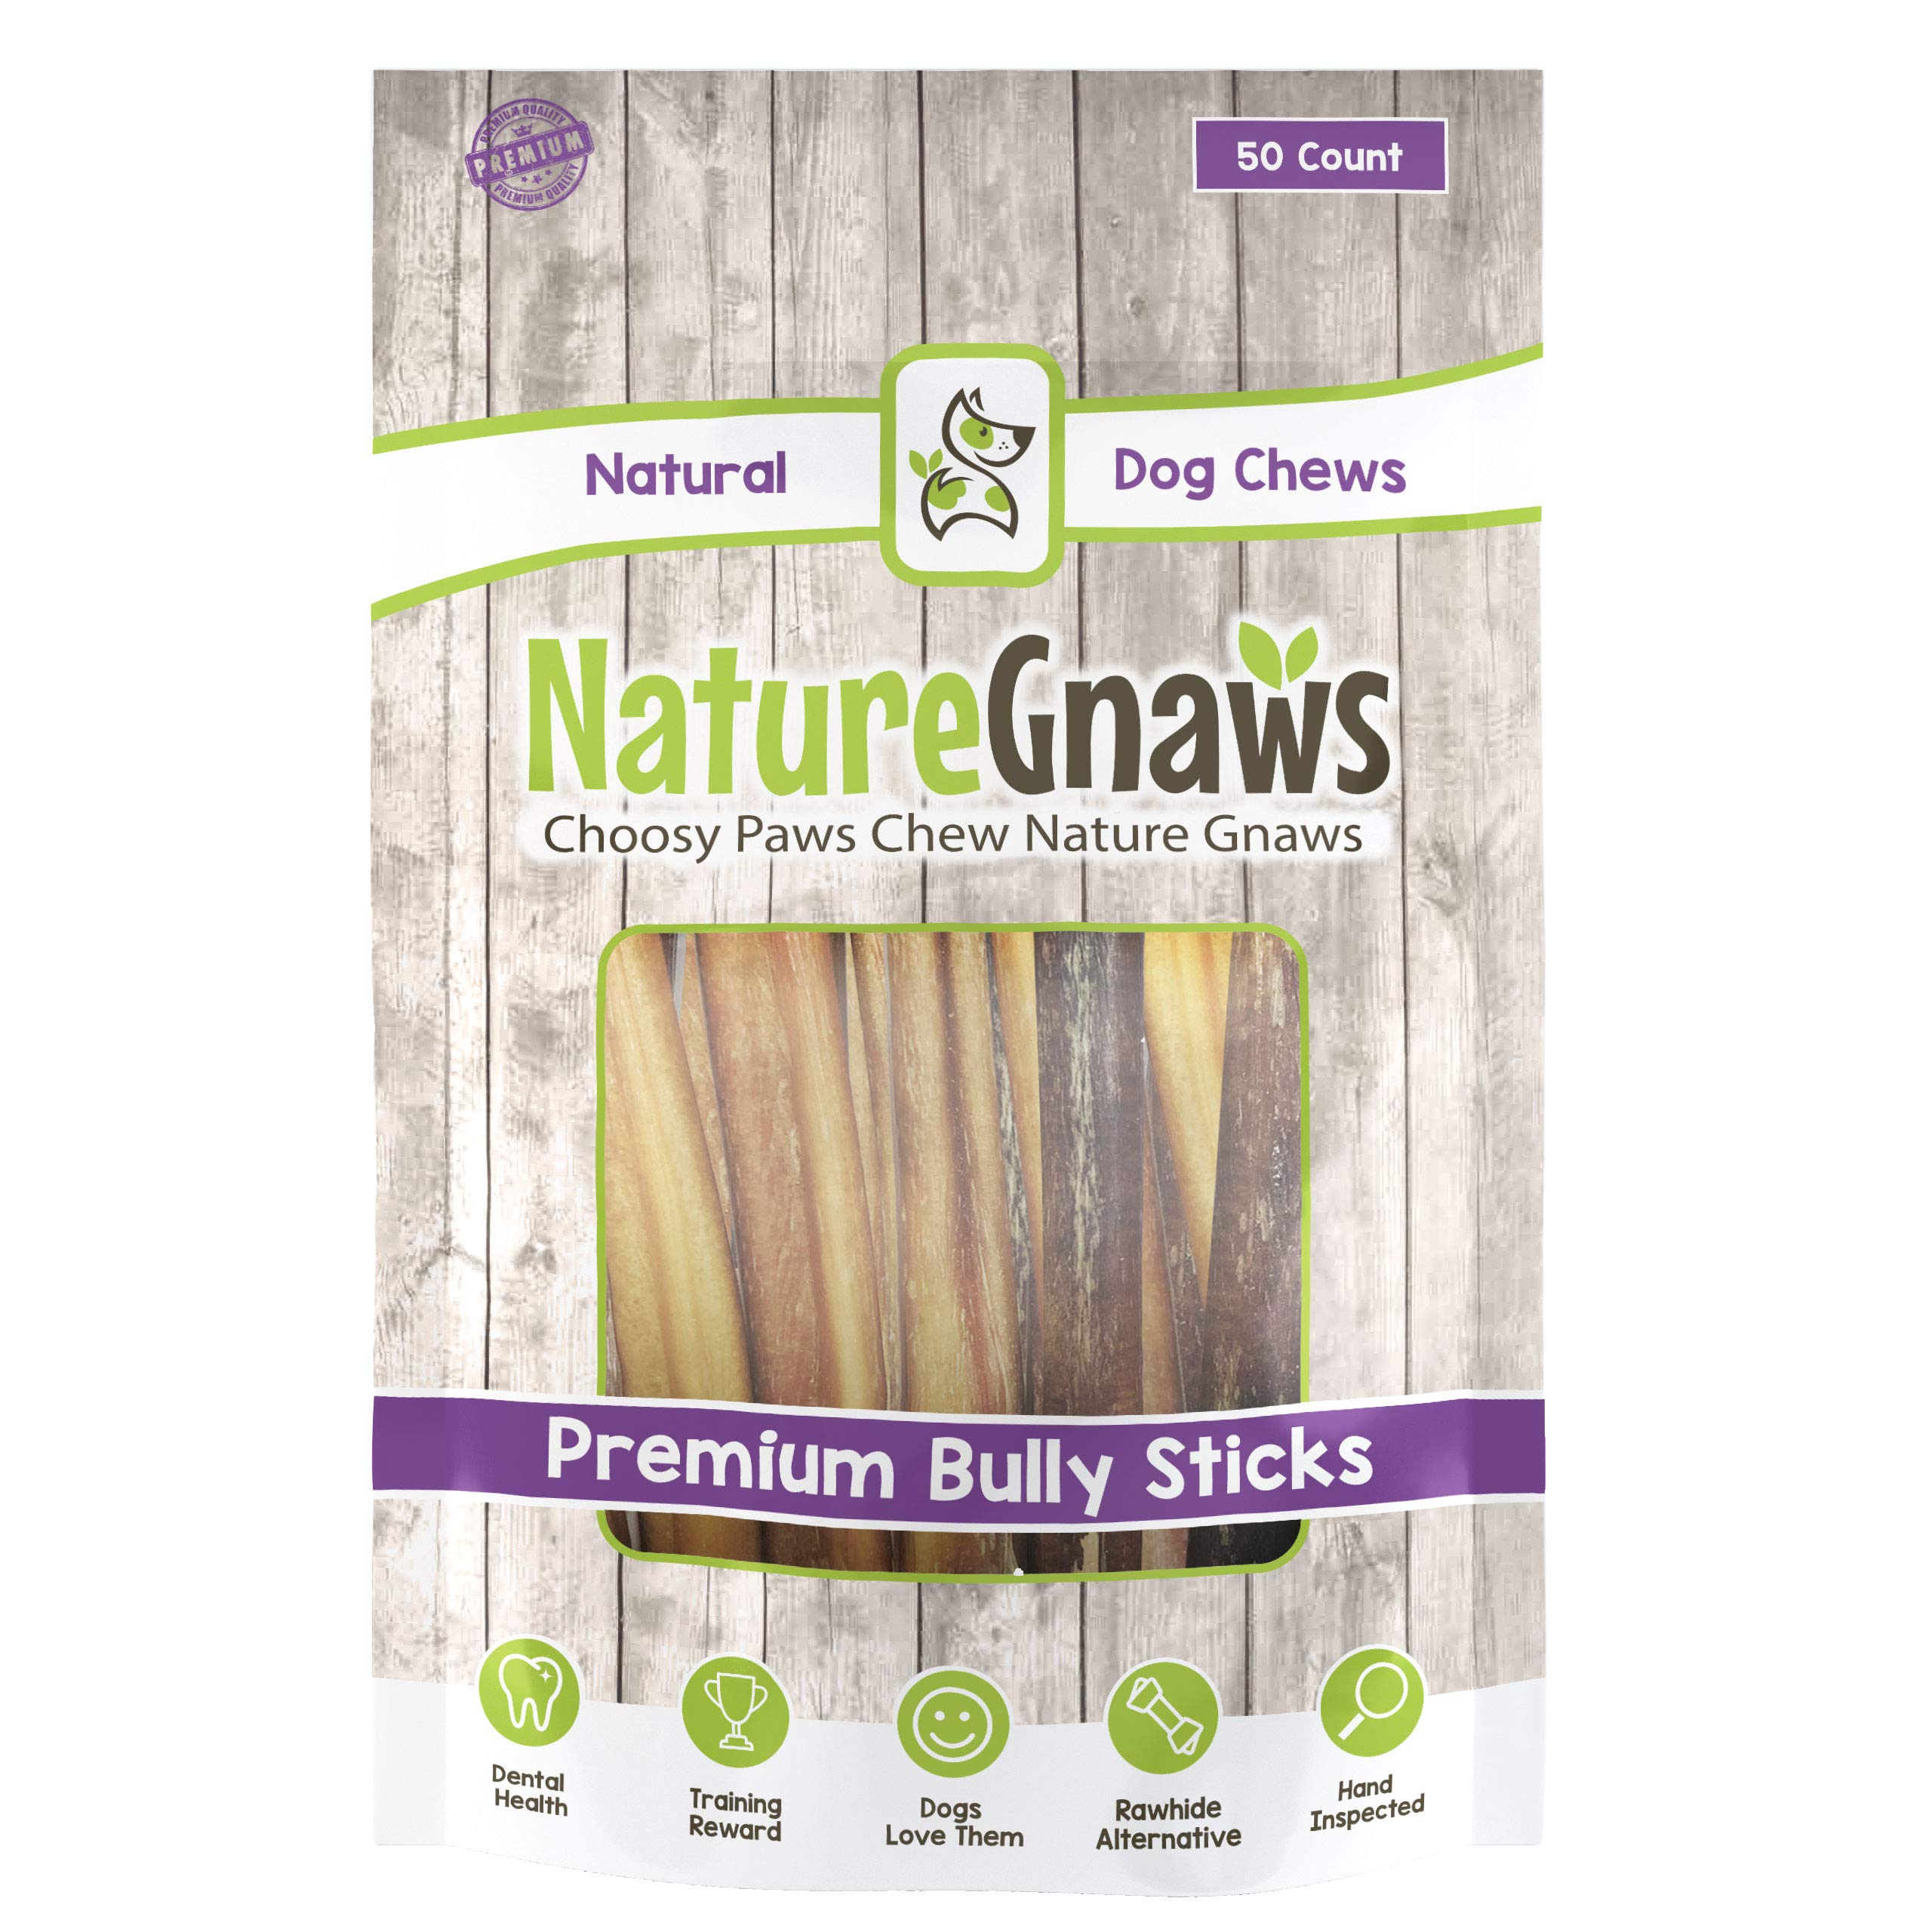 Nature Gnaws Large Bully Sticks 5-6 inch (50 Pack) Bulk - 100% Natural Grass-Fed Beef Dog Chews by Nature Gnaws